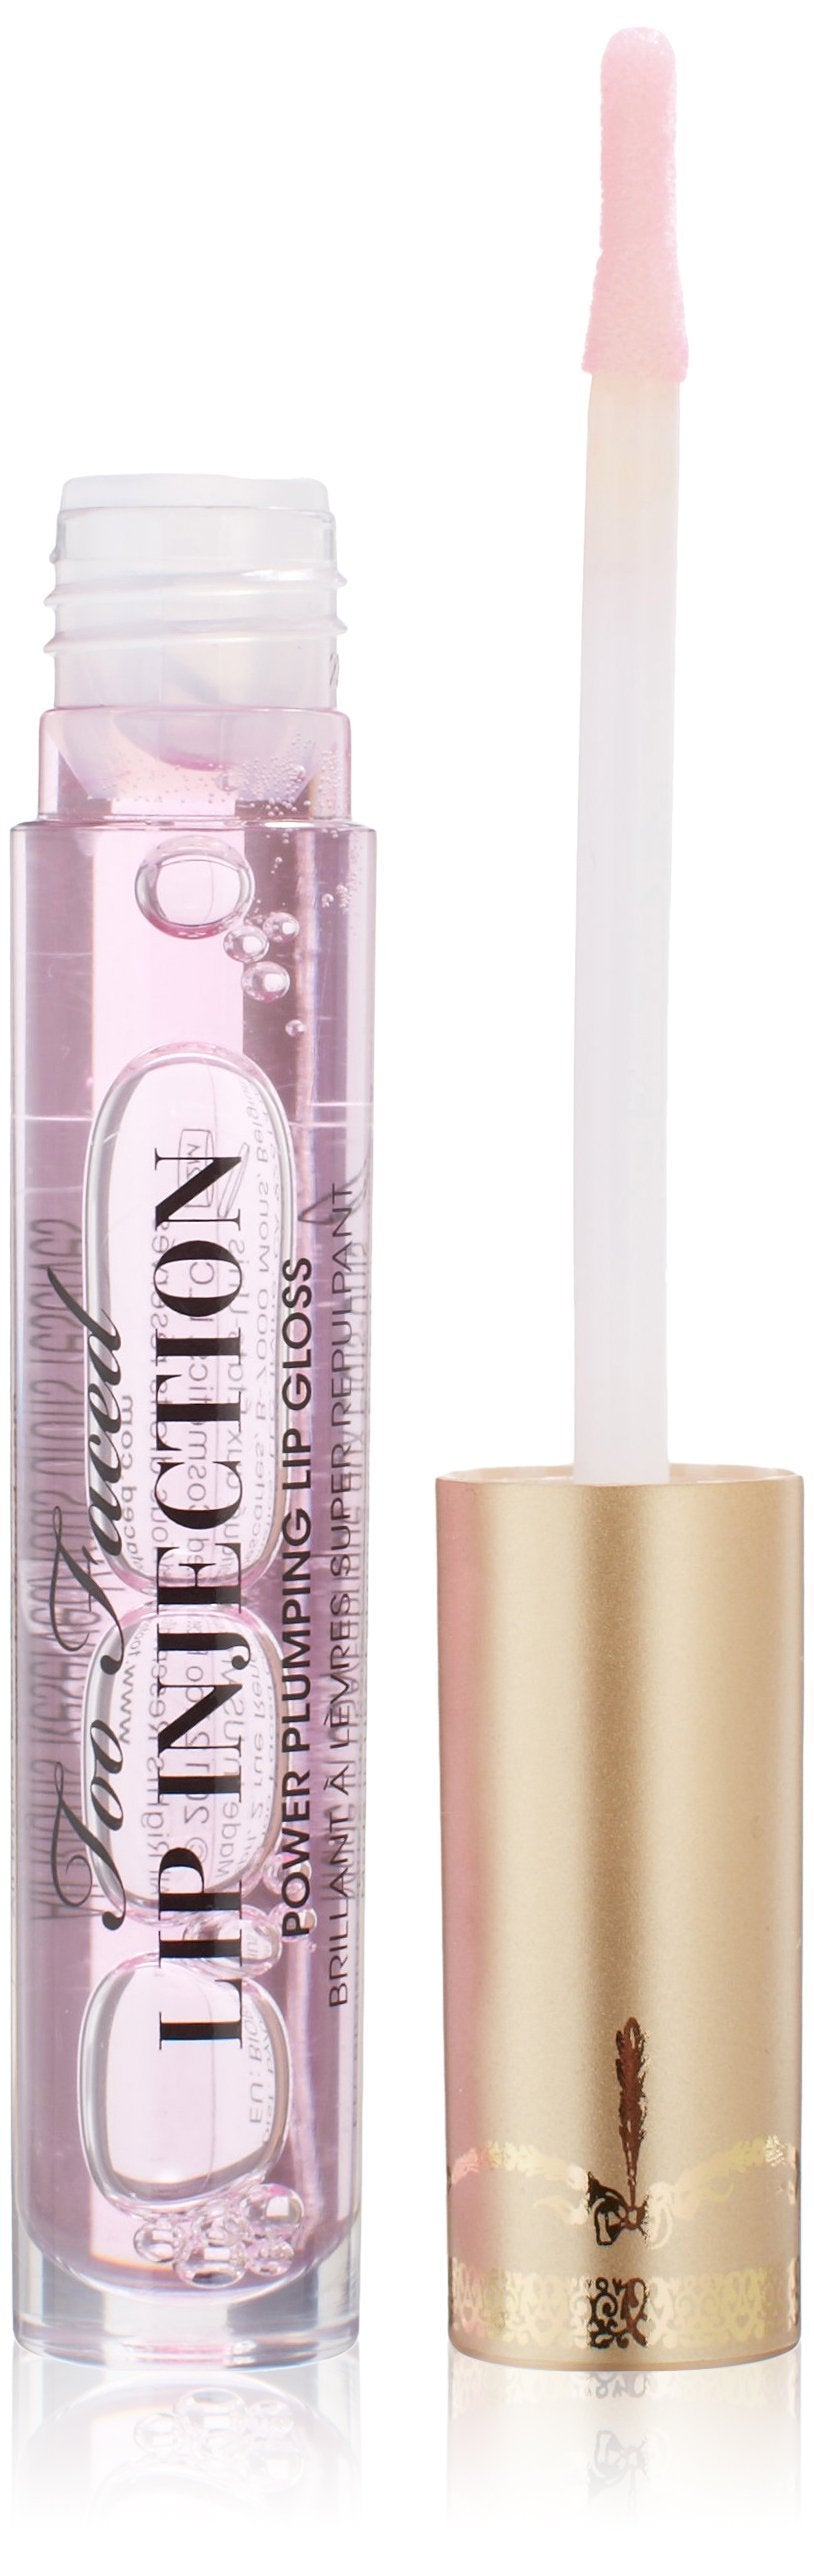 Too Faced Lip Injection Power Plumping Lip Gloss for Women, 0.14 Ounce - Glumech